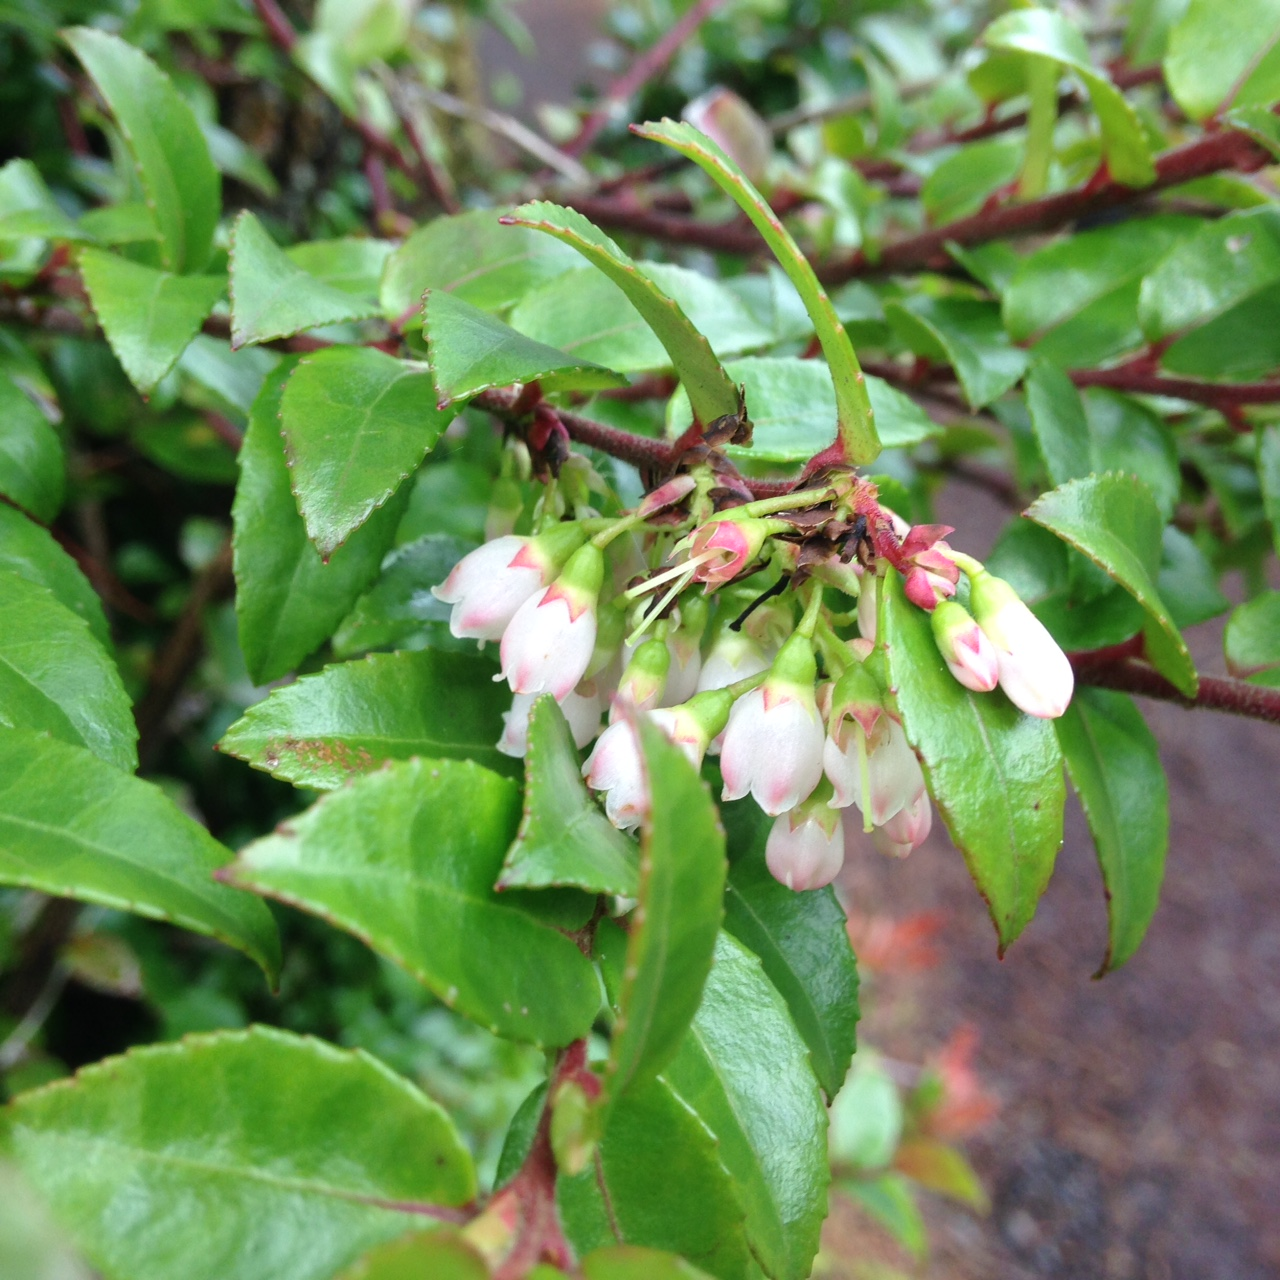 Evergreen huckleberry flowers in March 2015